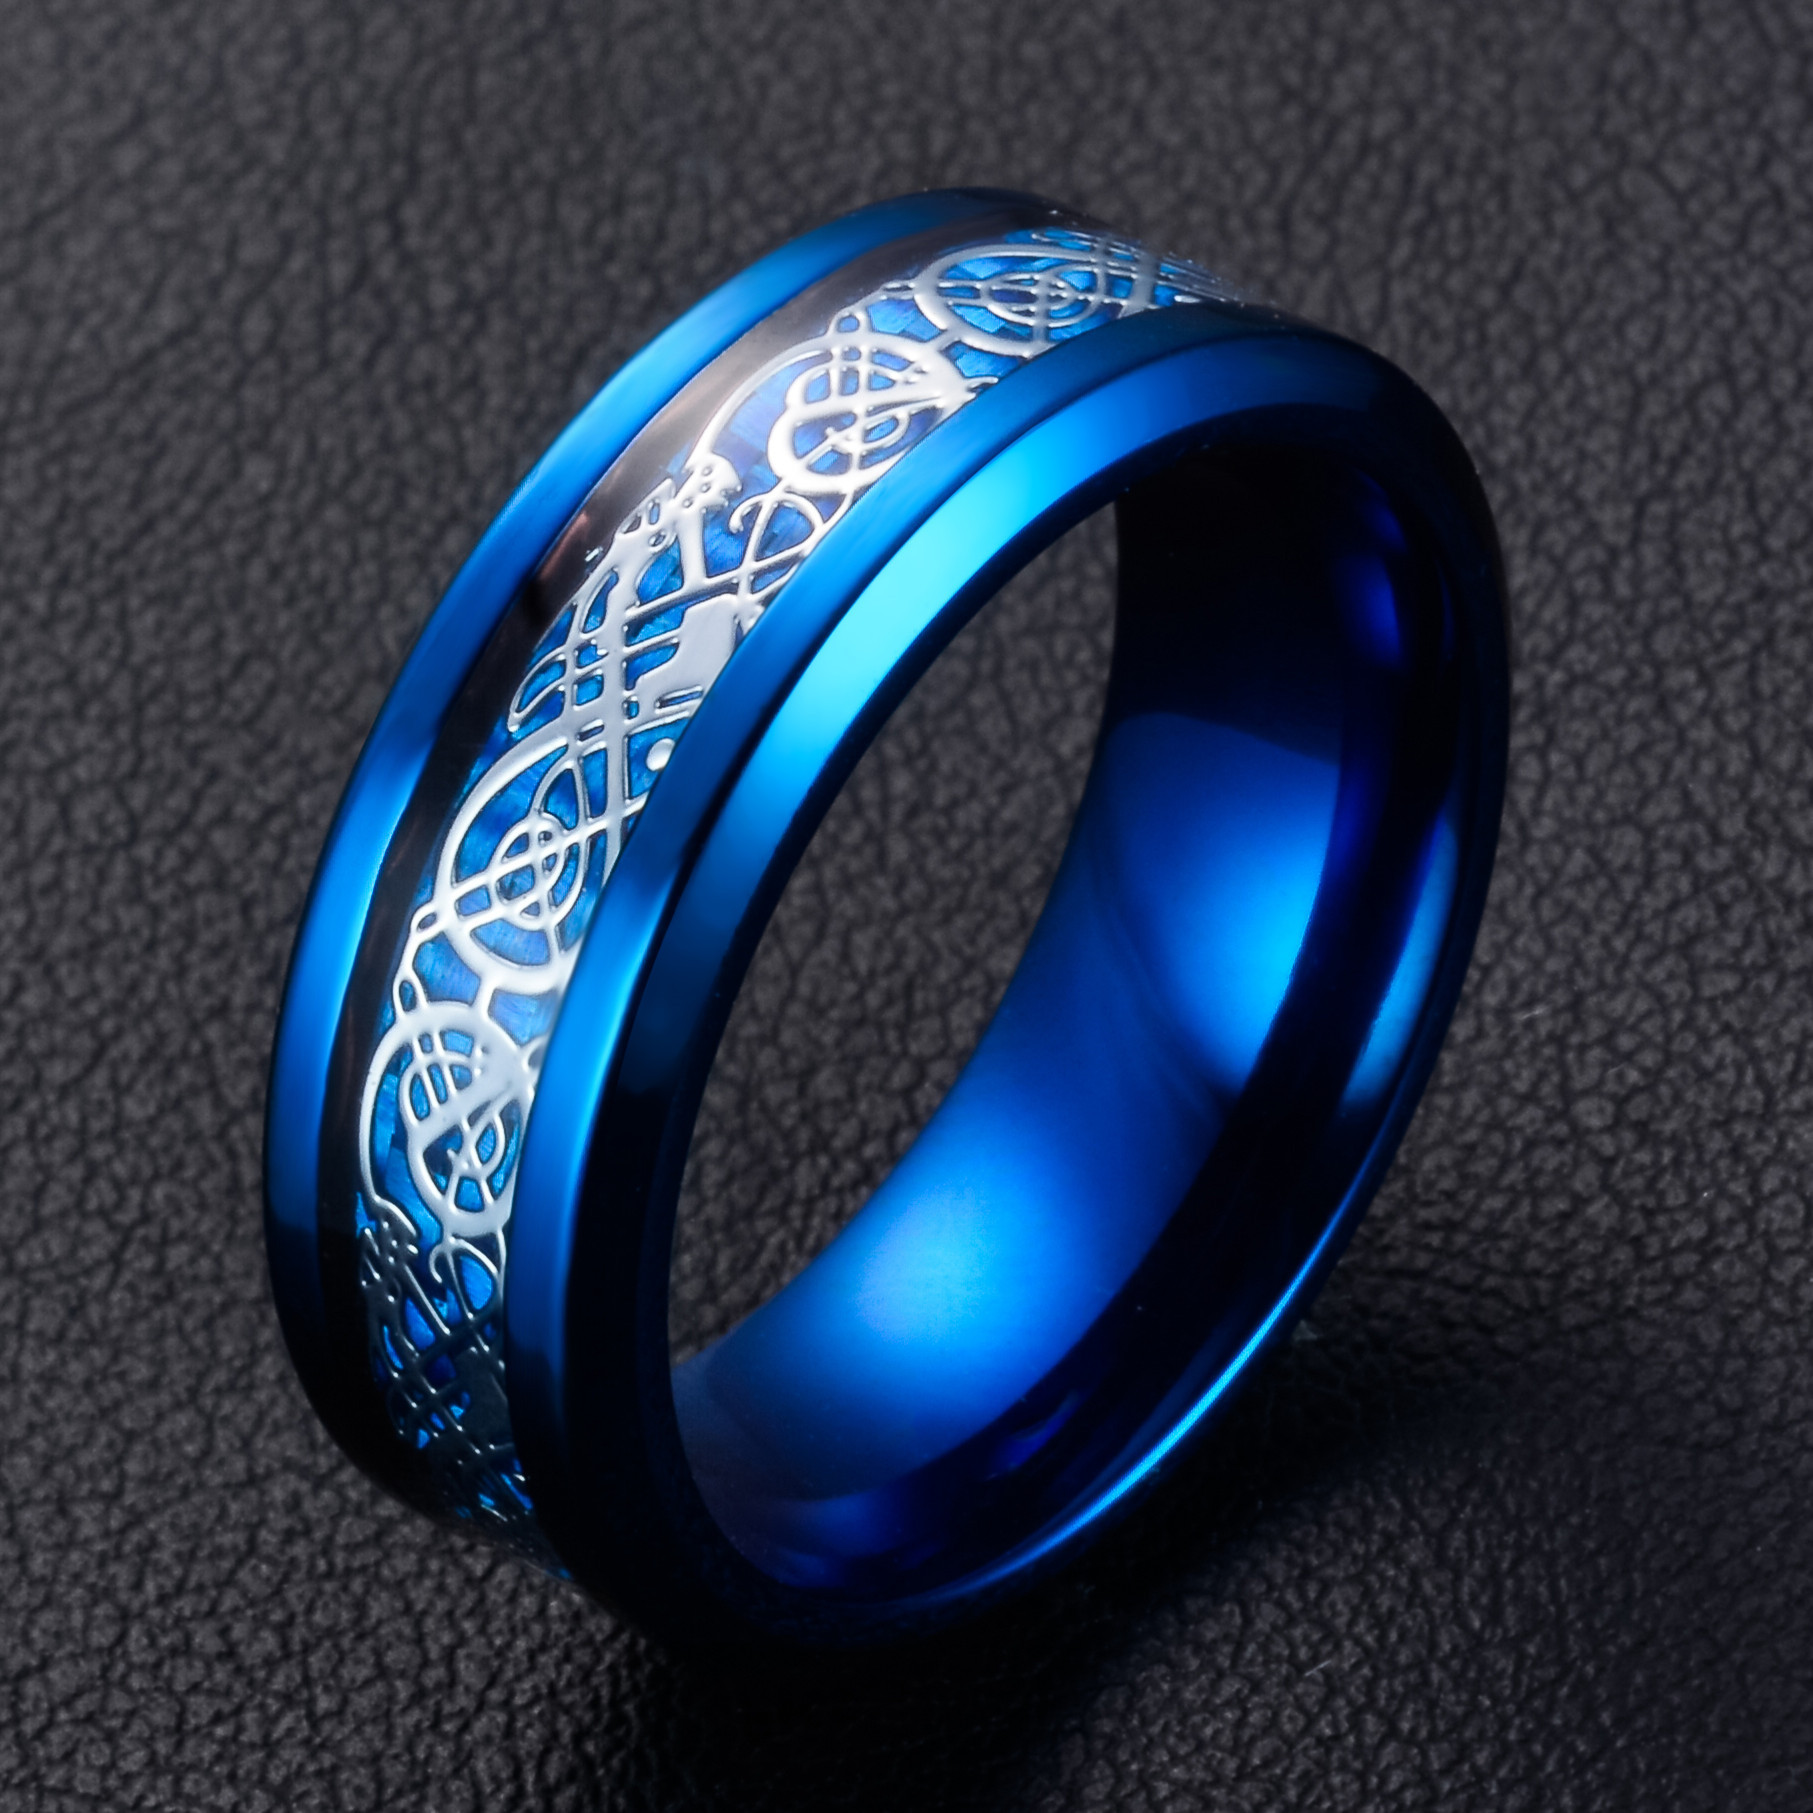 sizes sale dragon product blue princess jewelry rings titanium mens styles steel hot rbvajfm men ring cut stainless emerald